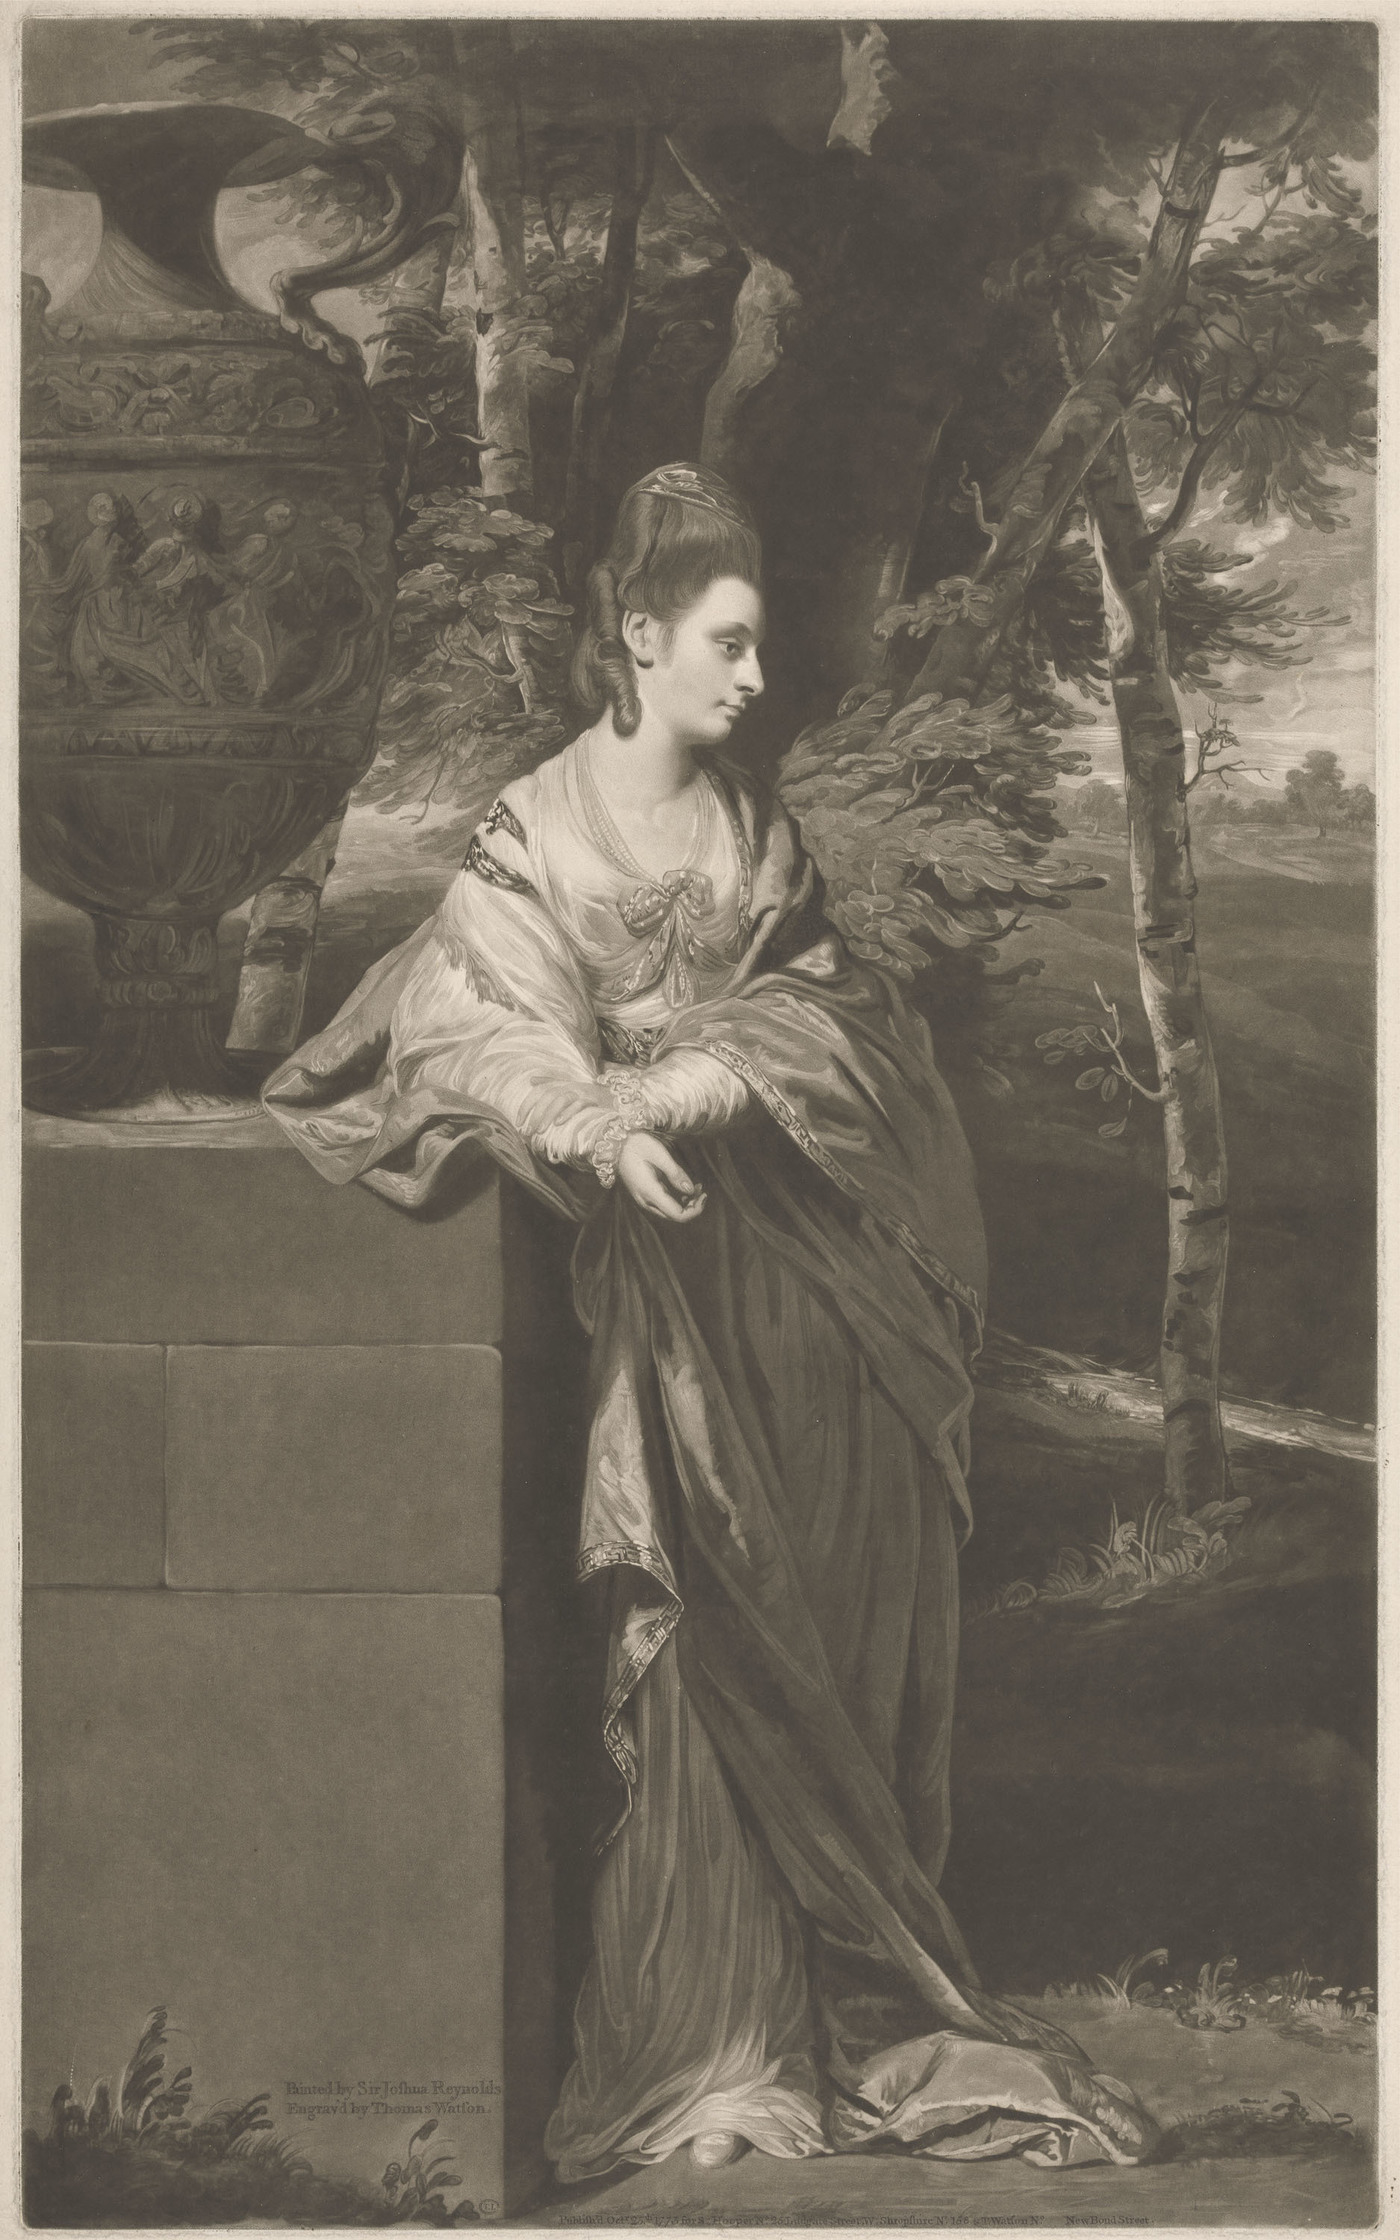 thomas-watson-after-joshua-reynolds-the-hon-mrs-parker_enl-624d529cc8eace63210ca4c4b53428e4e796430a-s1400.jpg